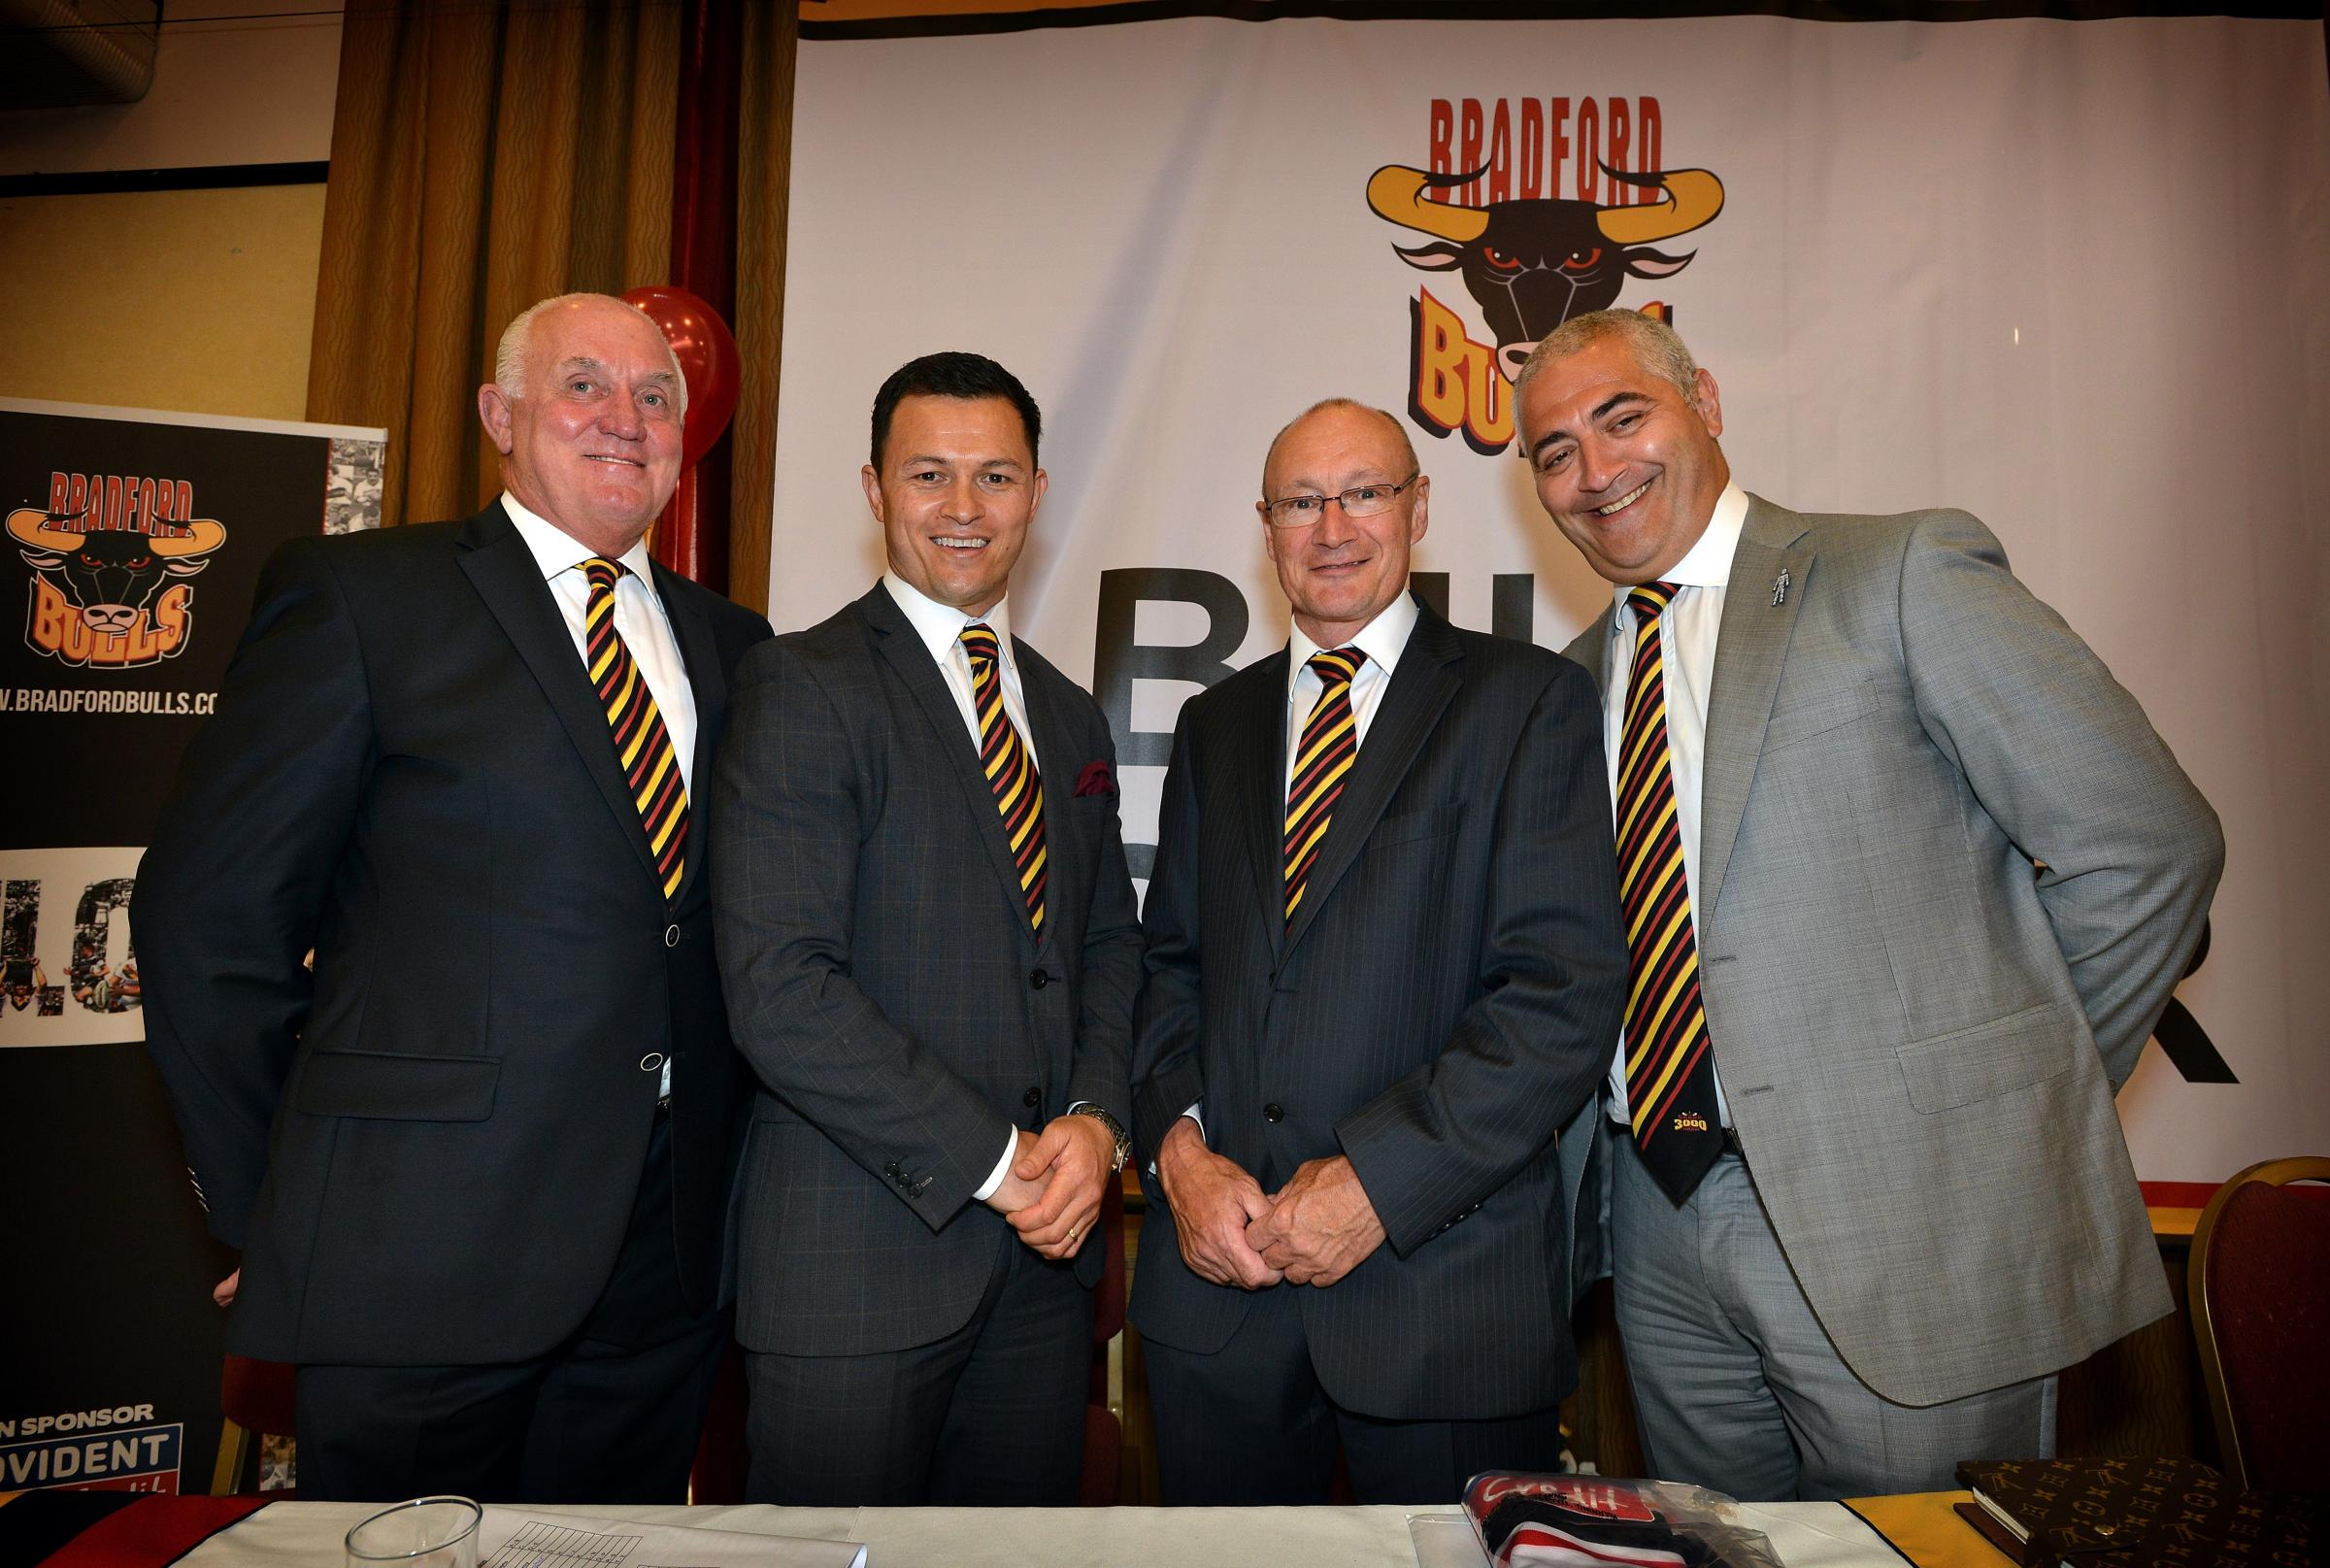 VIDEO: Chairman vows to turn a profit at Odsal with Bulls' rugby success 'a by-product'